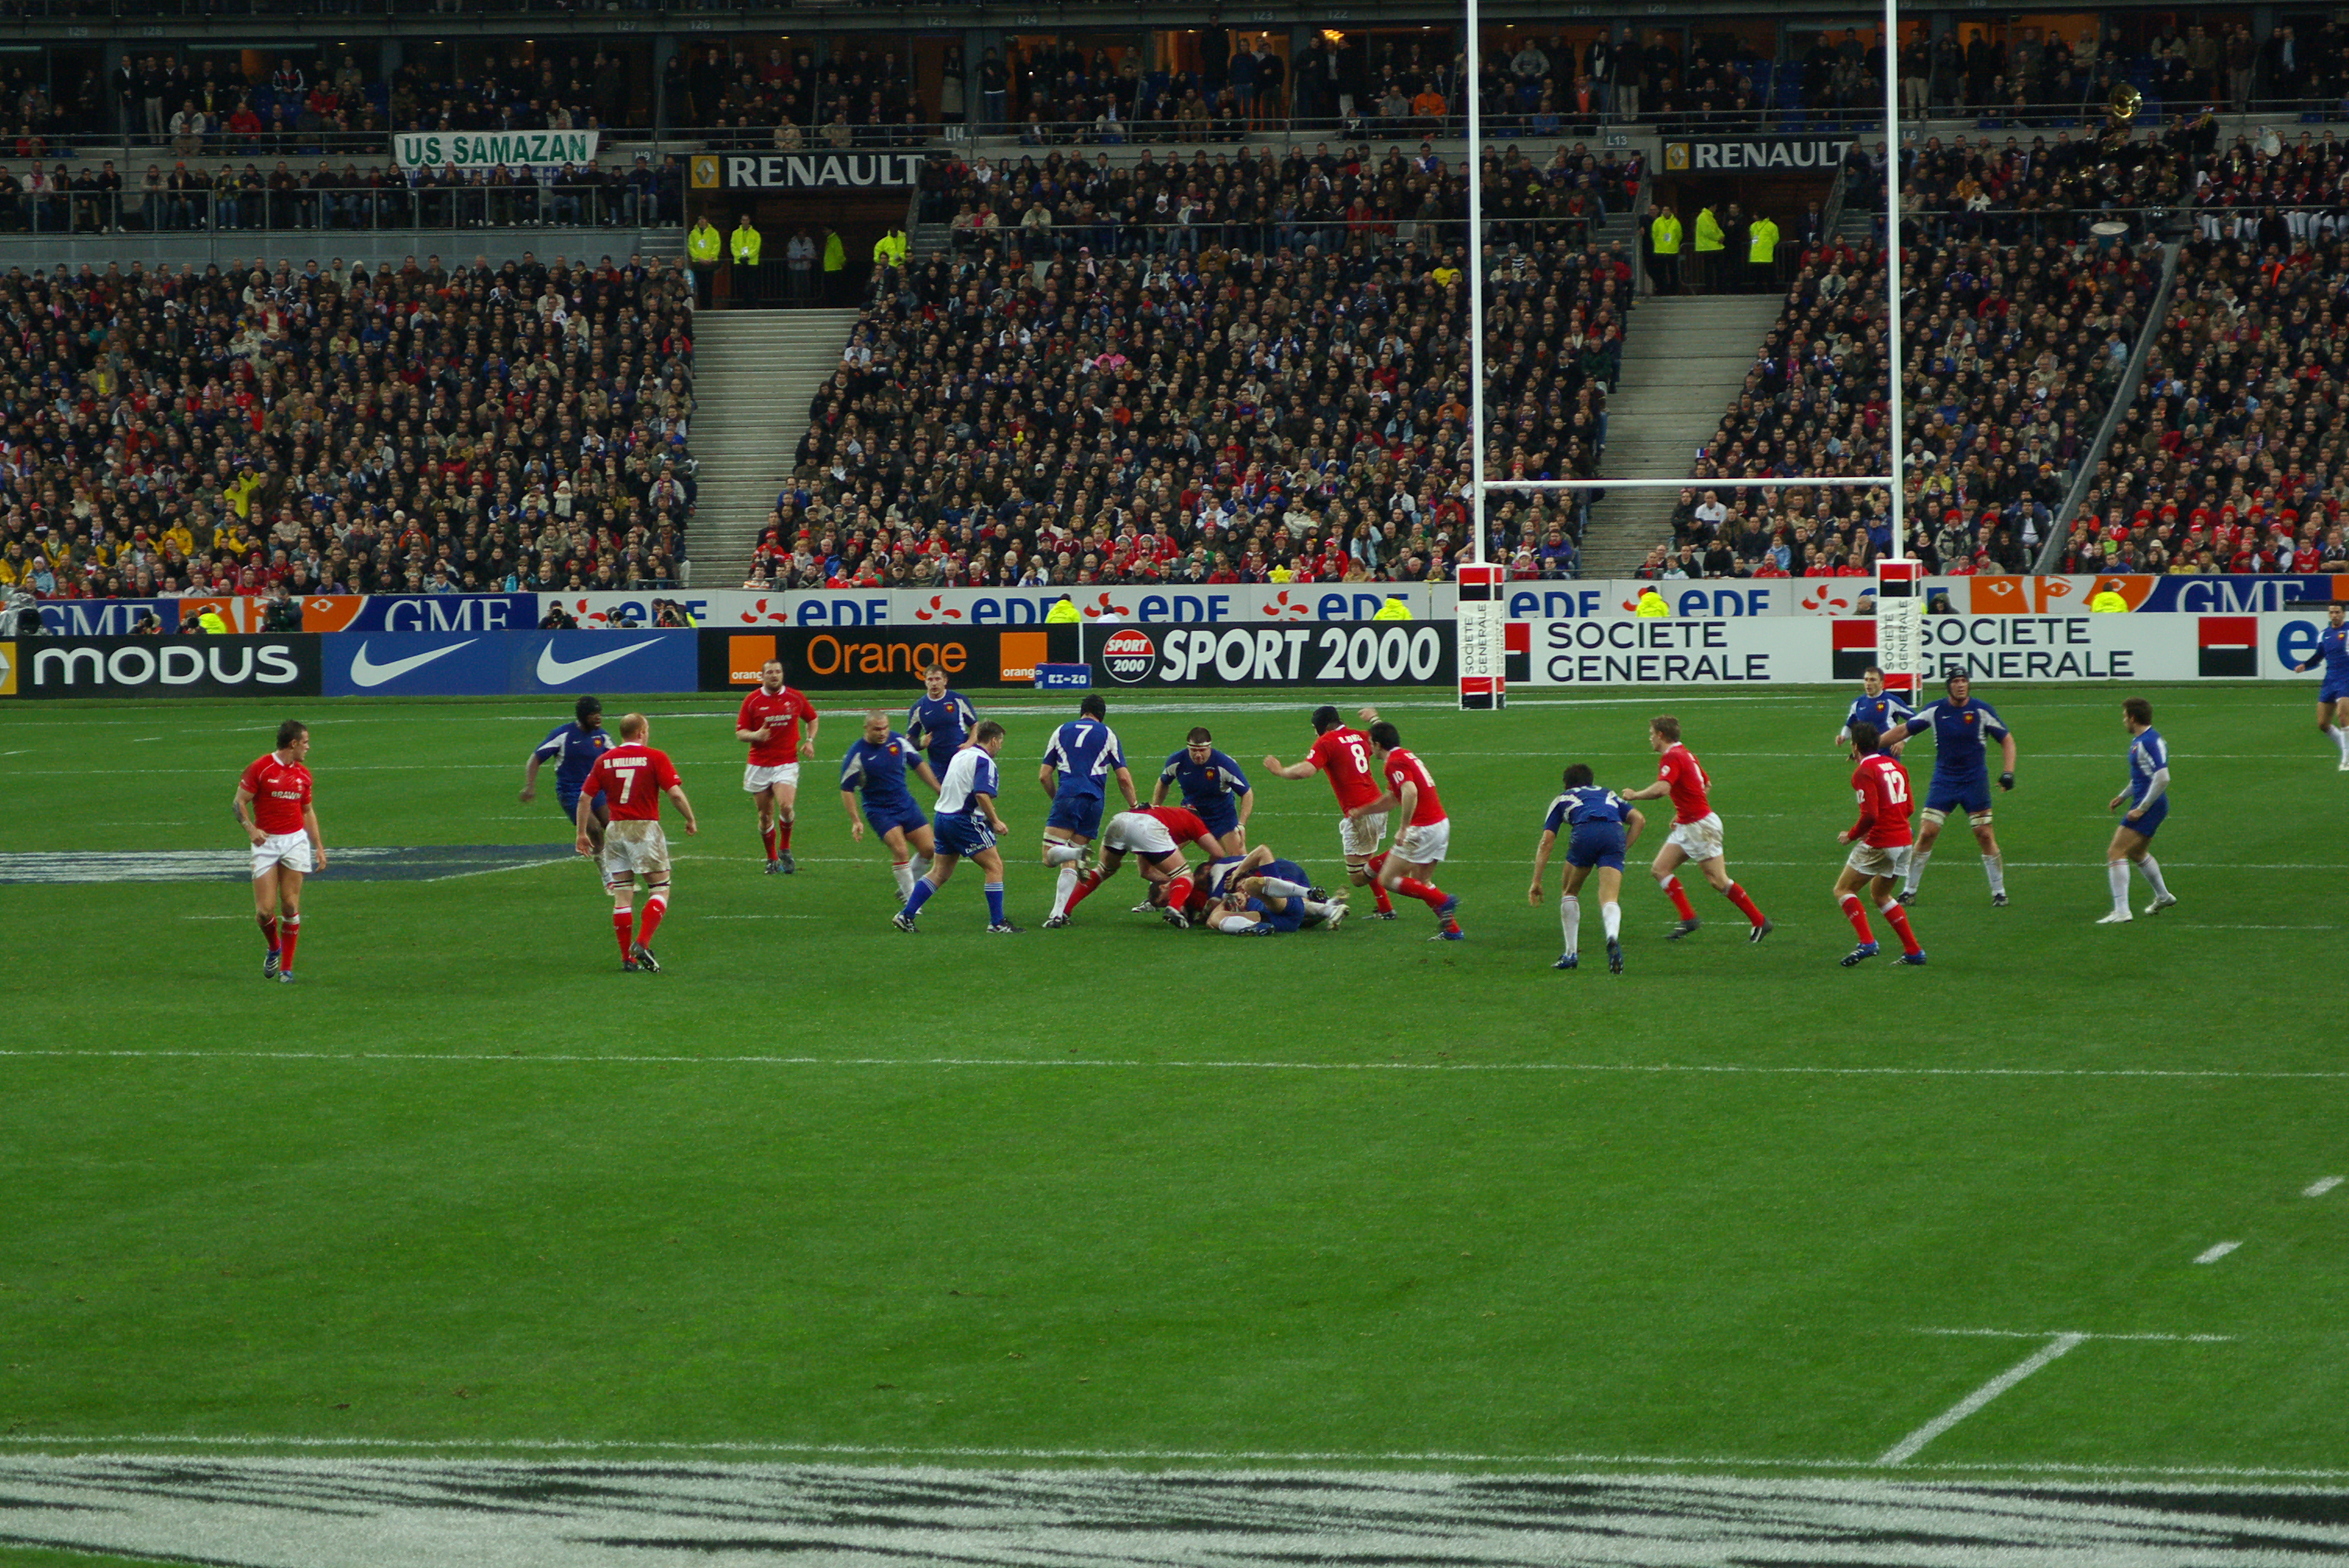 MyFrenchLife™ – MyFrenchLife.org - Paris in February - 2017 - whats on - Paris in Winter - Six nations Rugby - France vs Wales